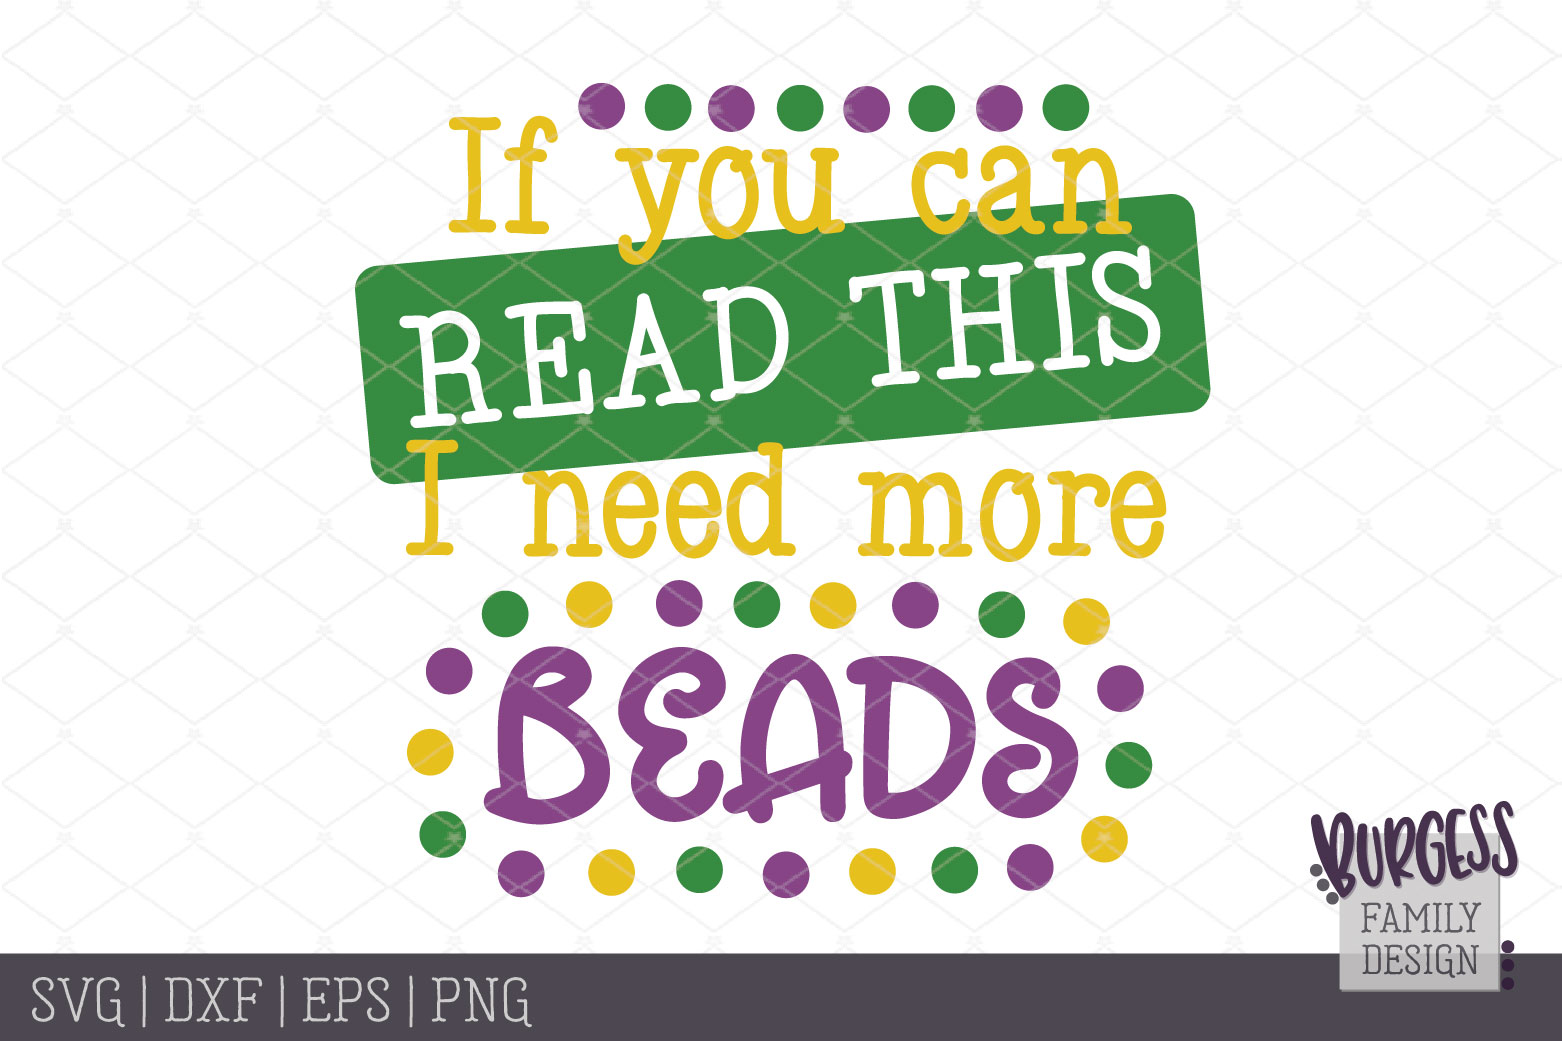 Mardi Gras If you can read this I need more beads | Cut file example image 2